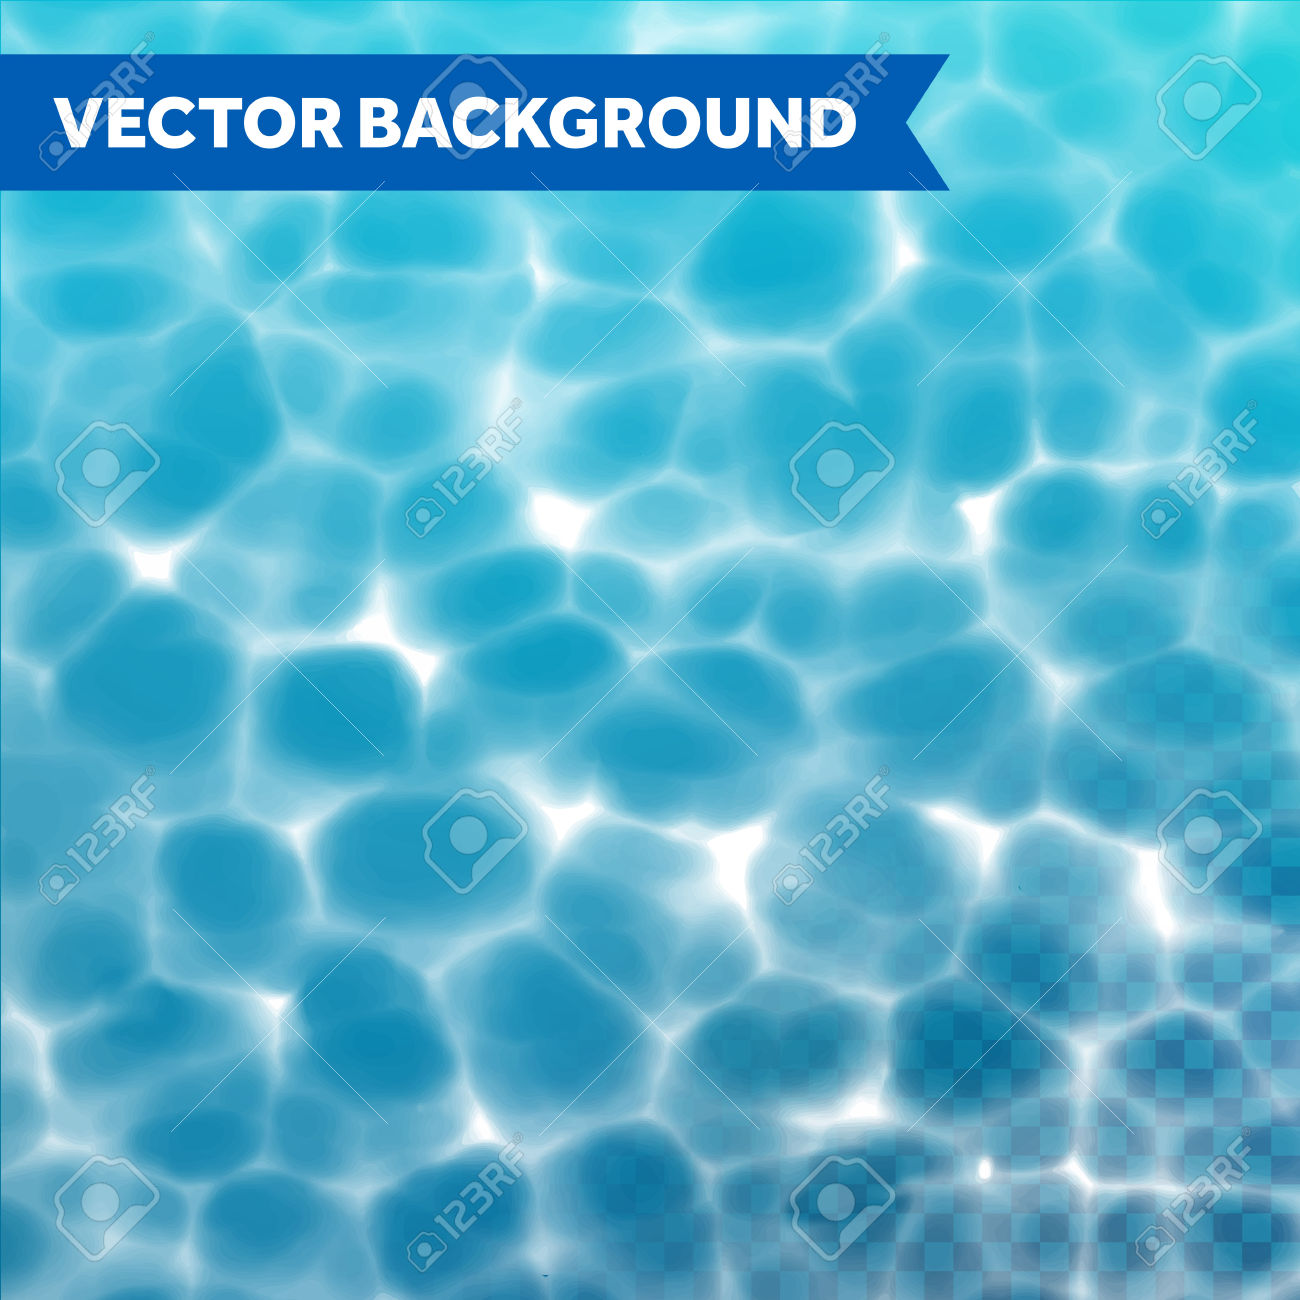 Vector Water Texture Background With Sunlight Reflections On.